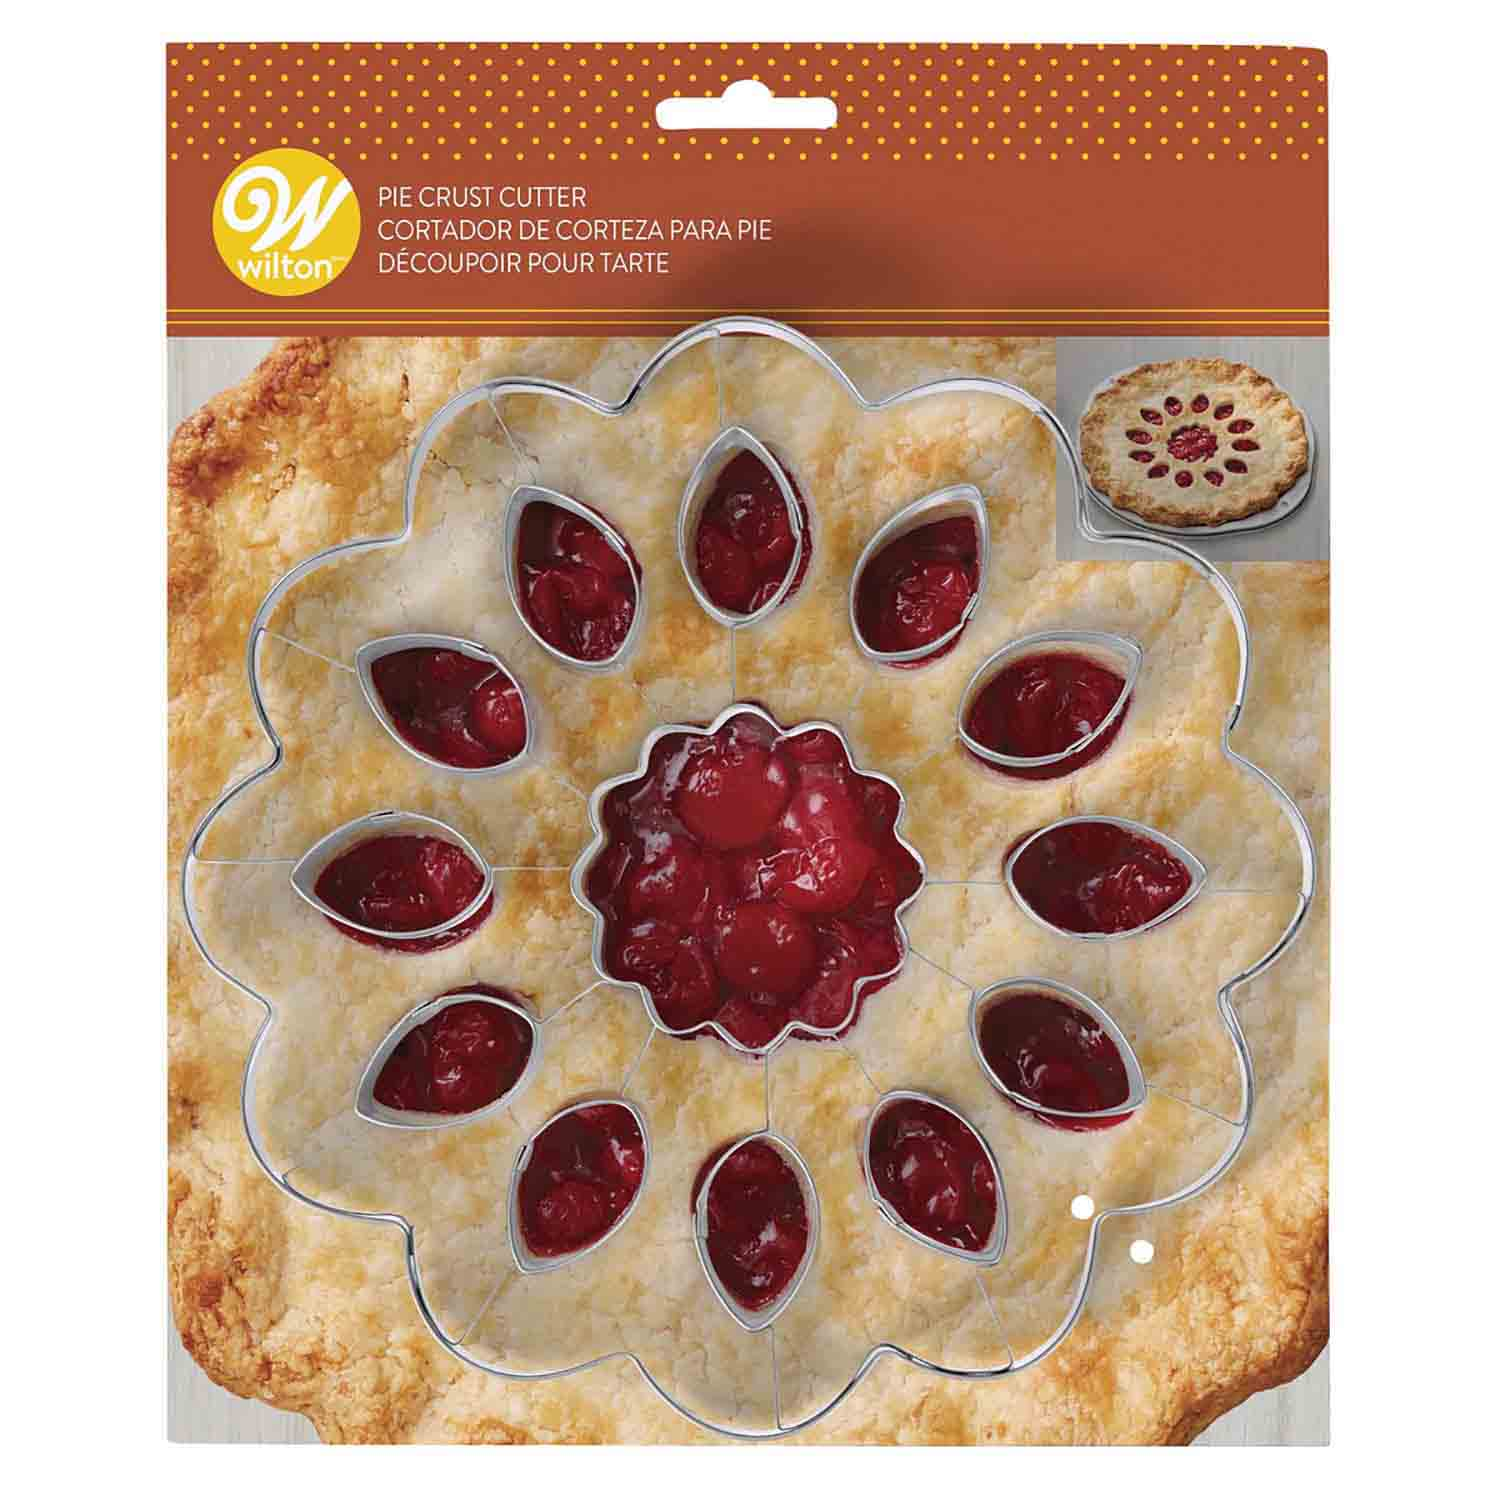 Pie Crust Cutter